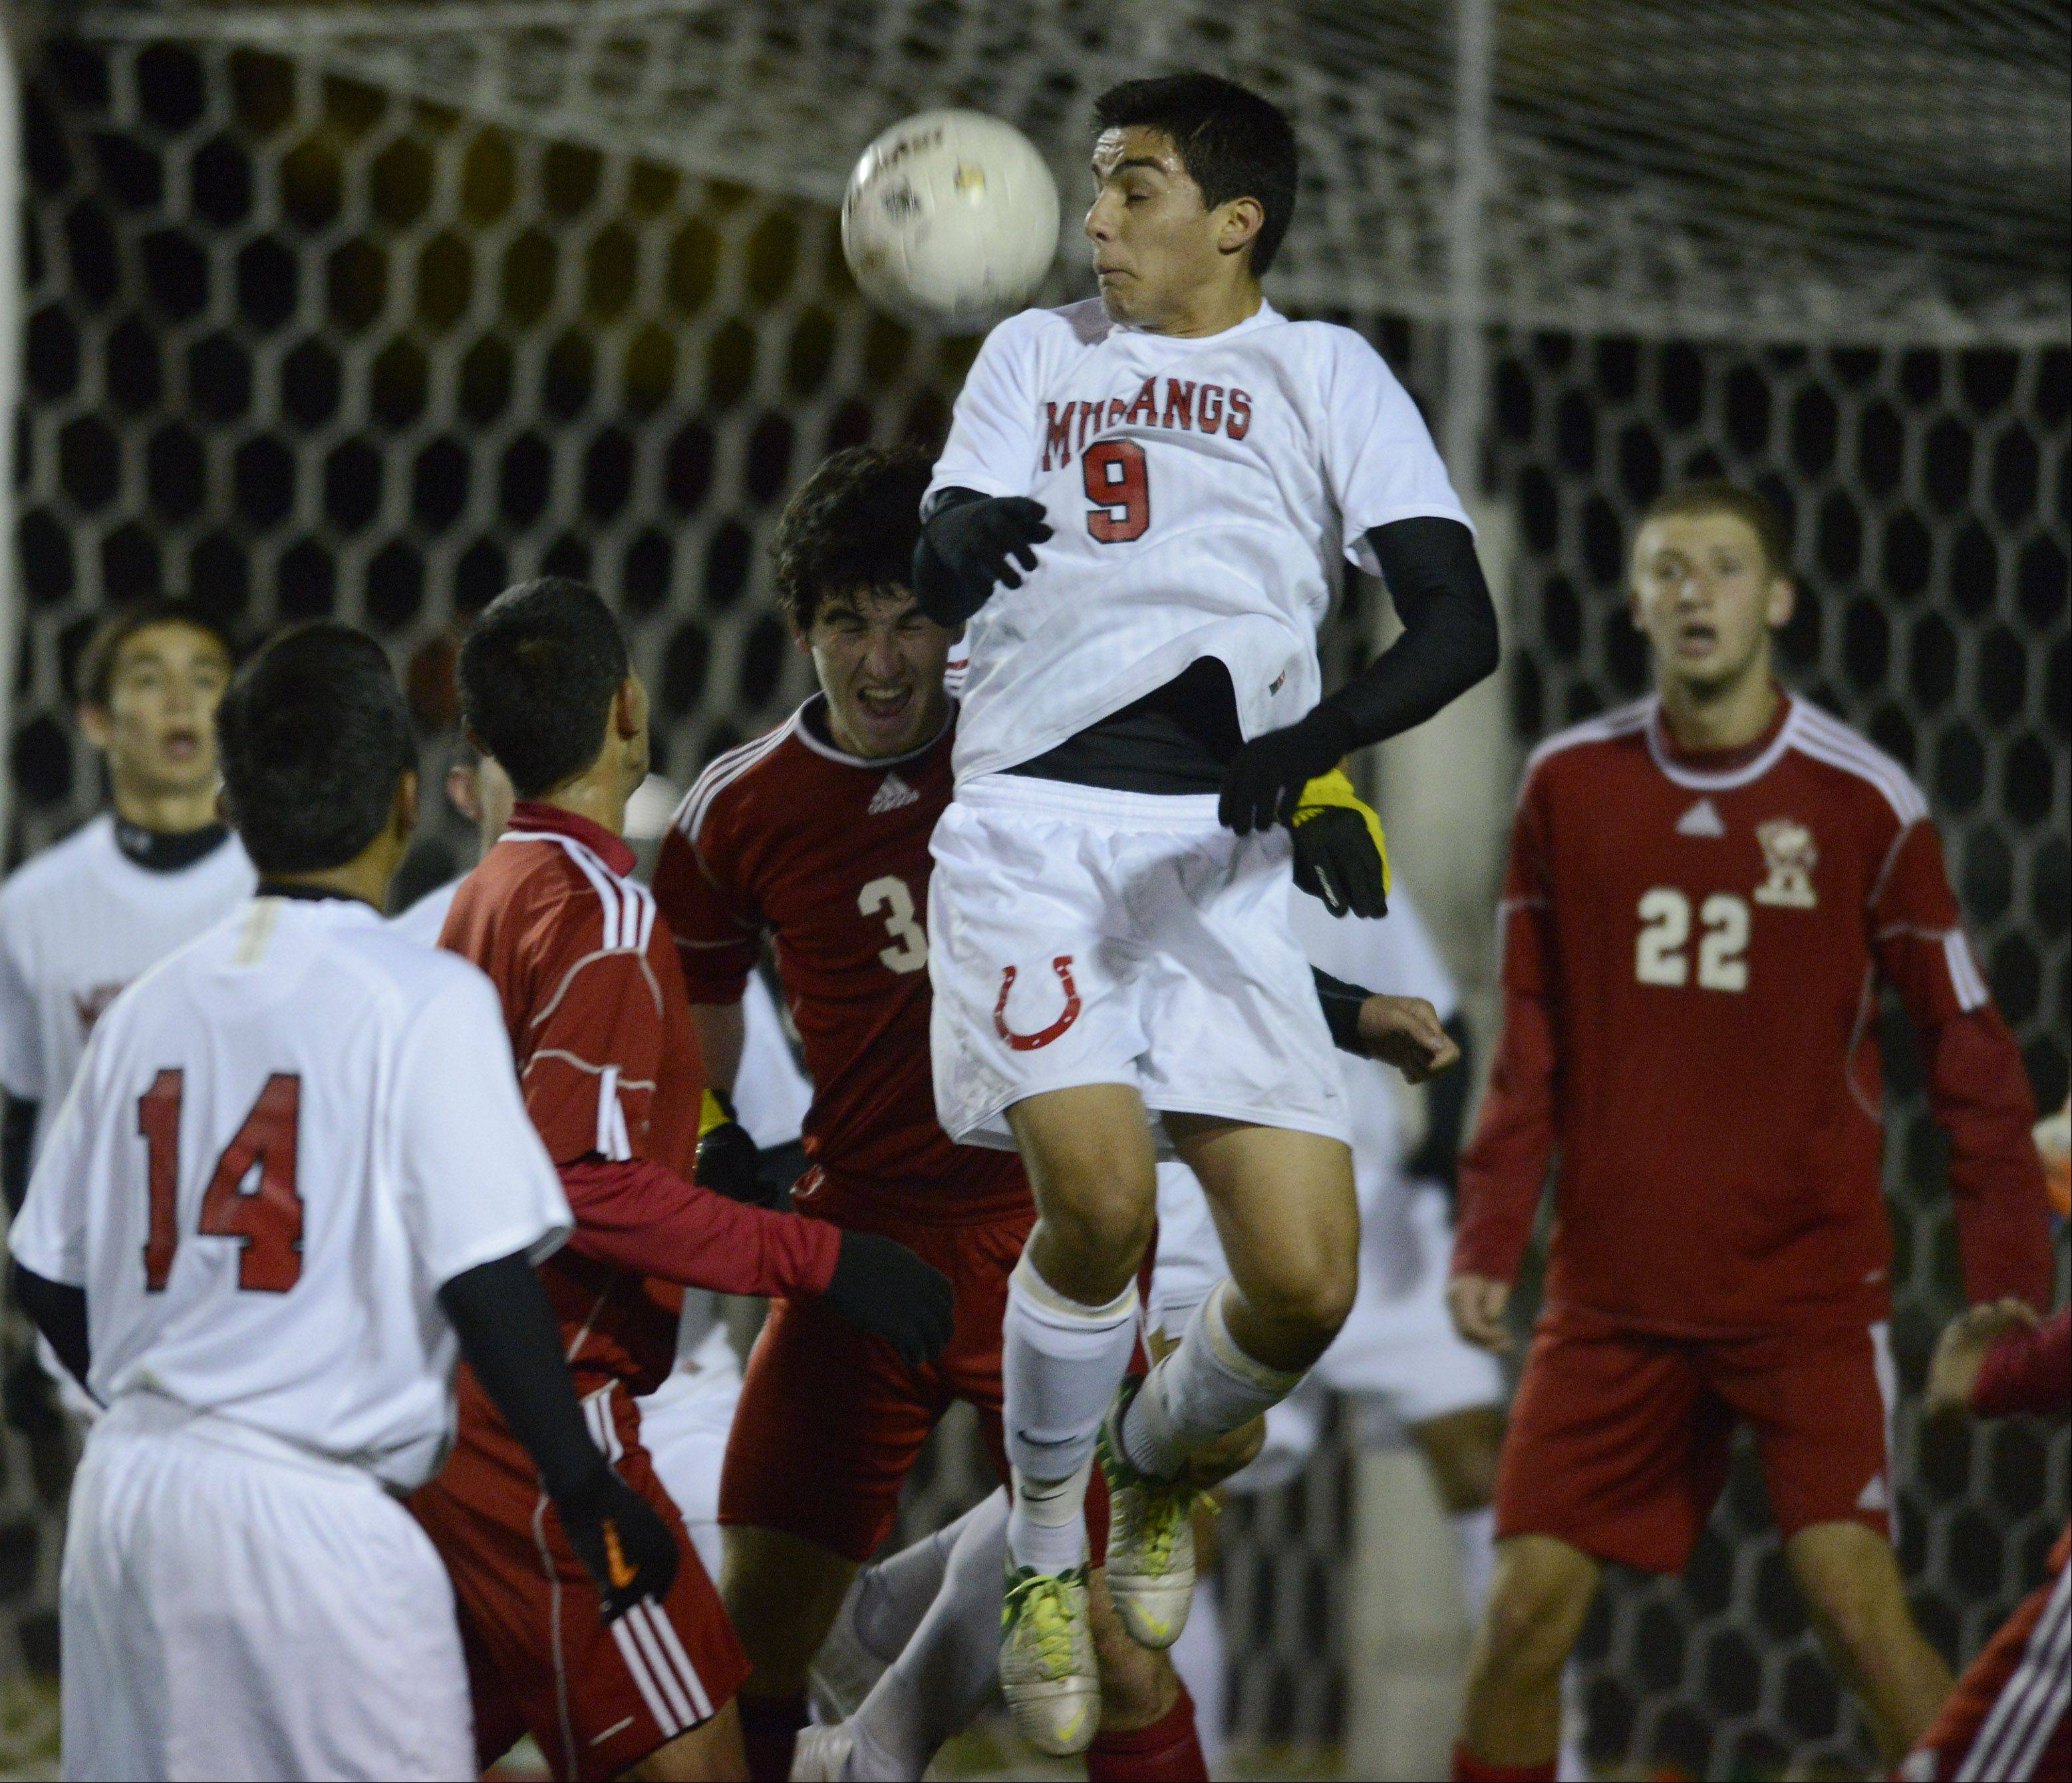 Mundelein's Chuy Alba, middle, tries to get in front of Palatine's Kyle Clancy in an attempt to direct the ball away from his team's goal during Tuesday's game at Palatine.